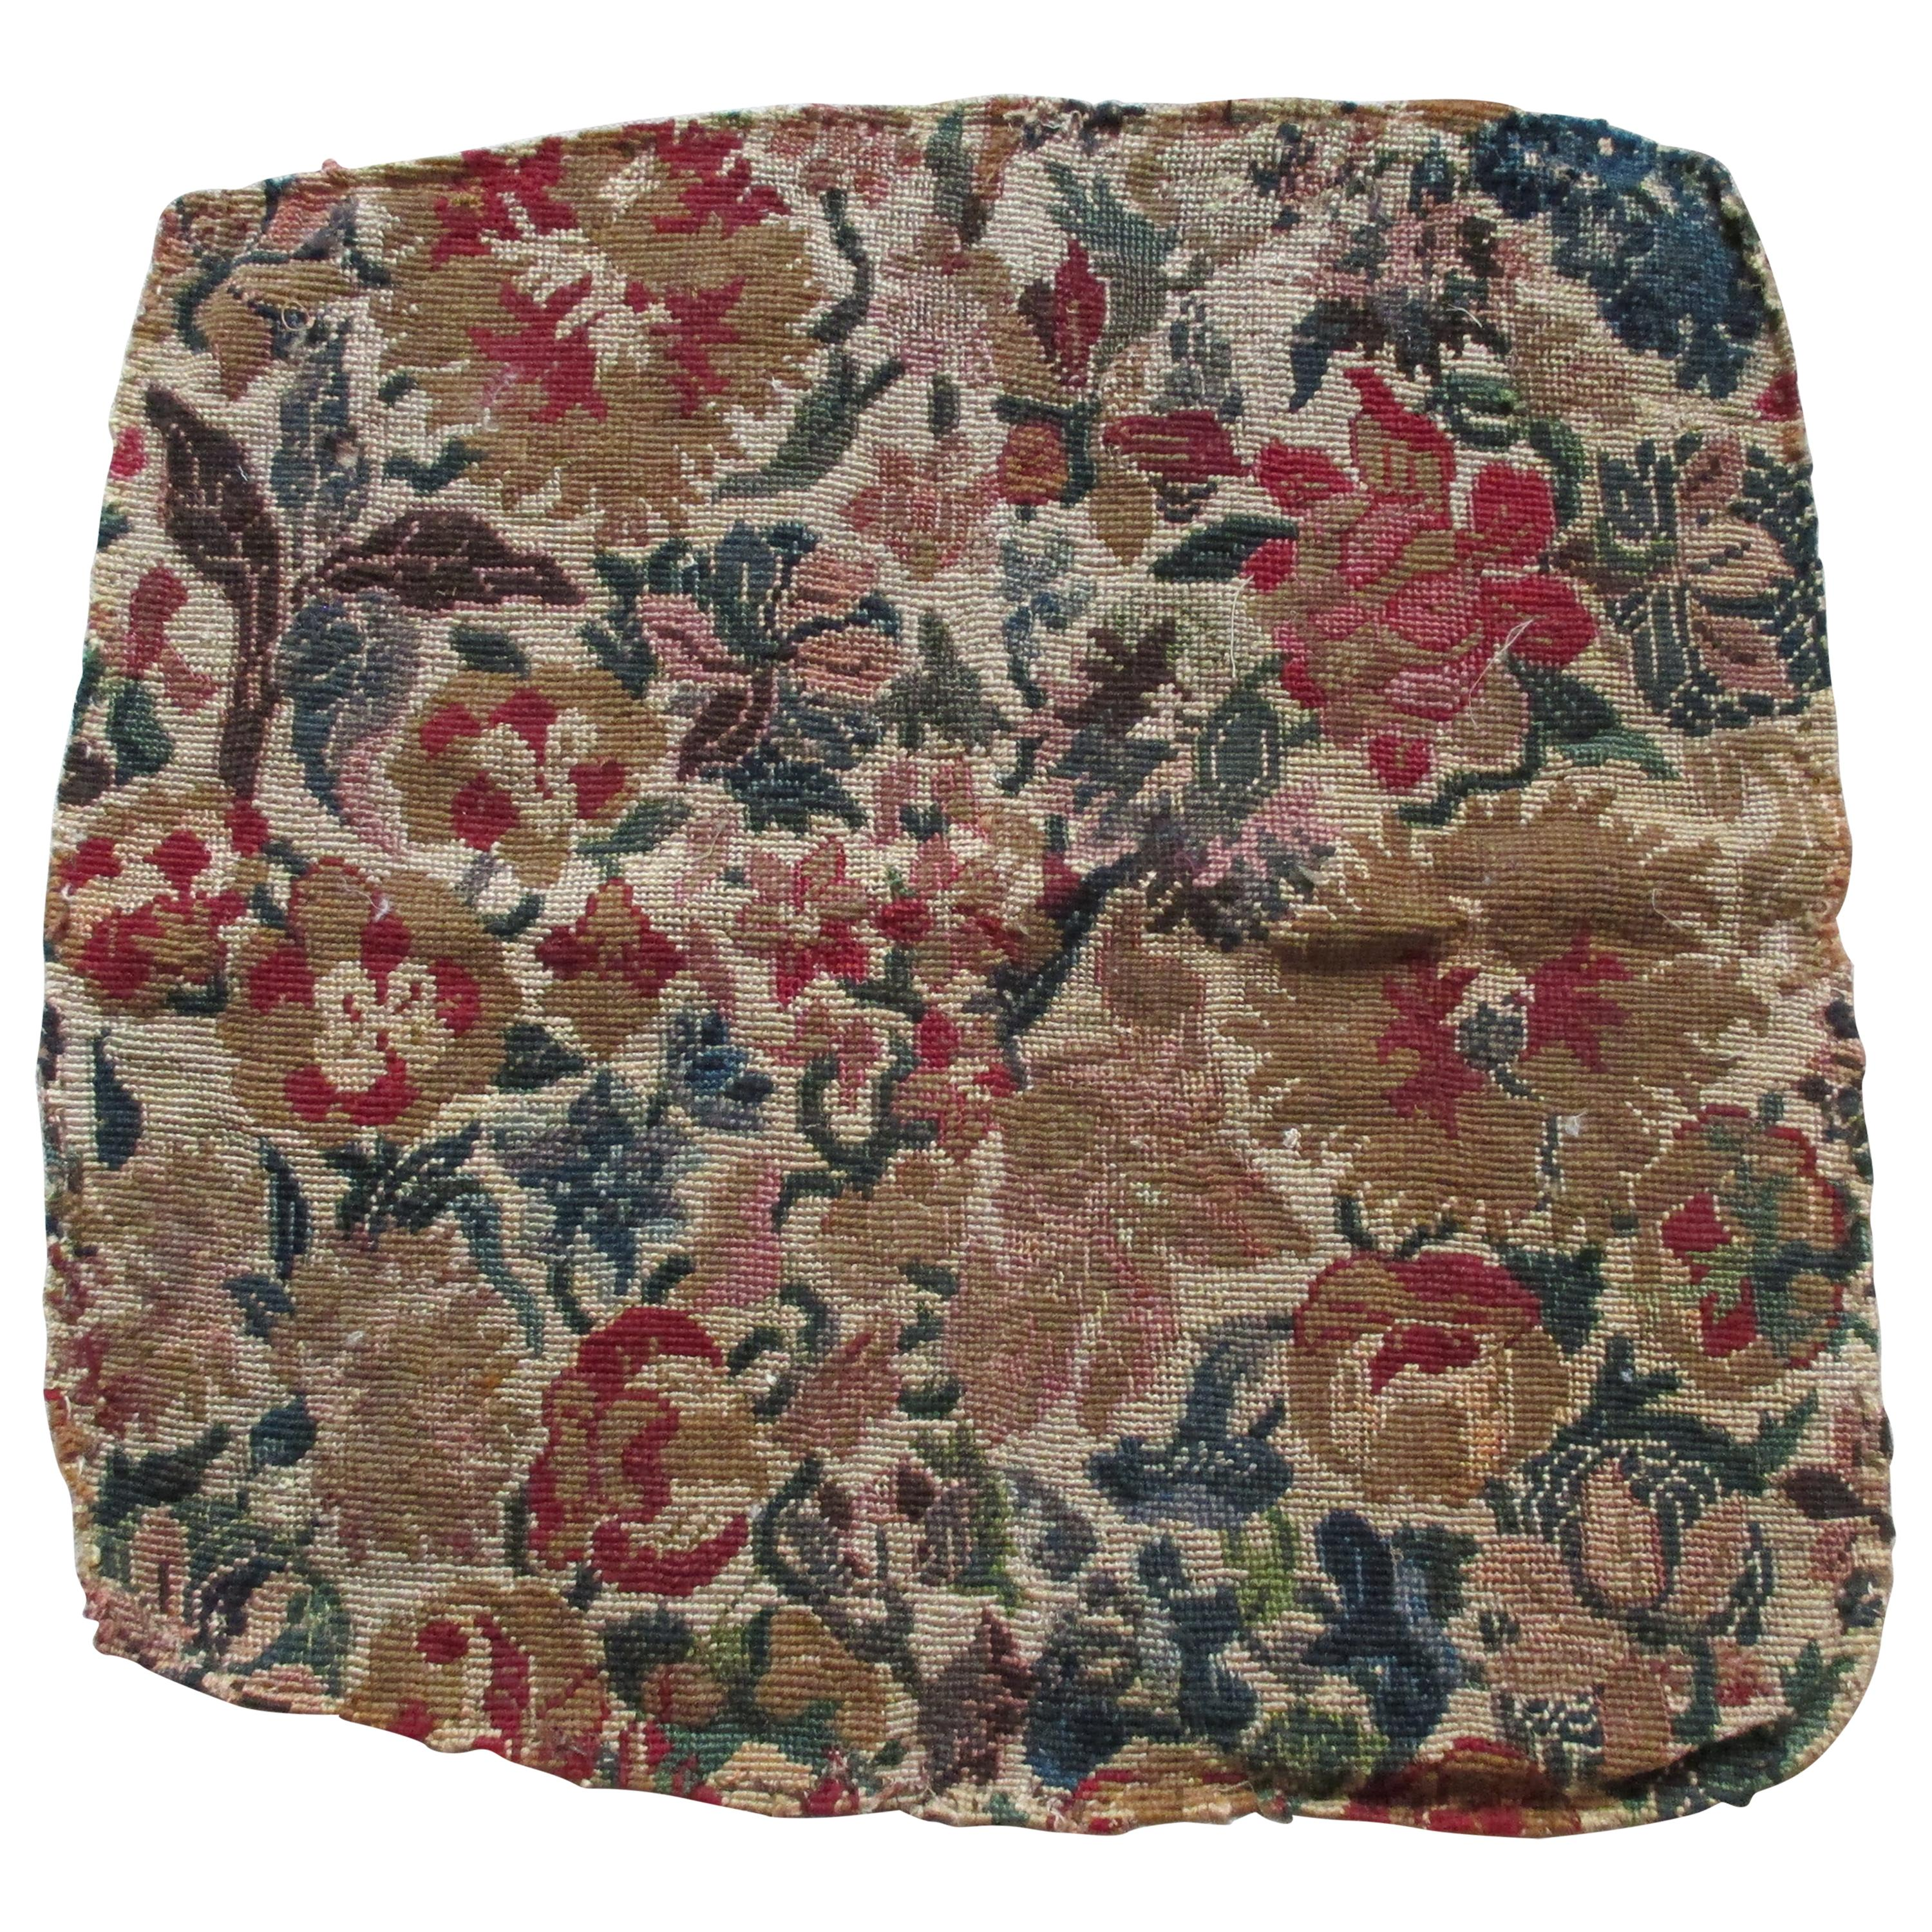 Antique Needlepoint Floral Tapestry Seat Cover